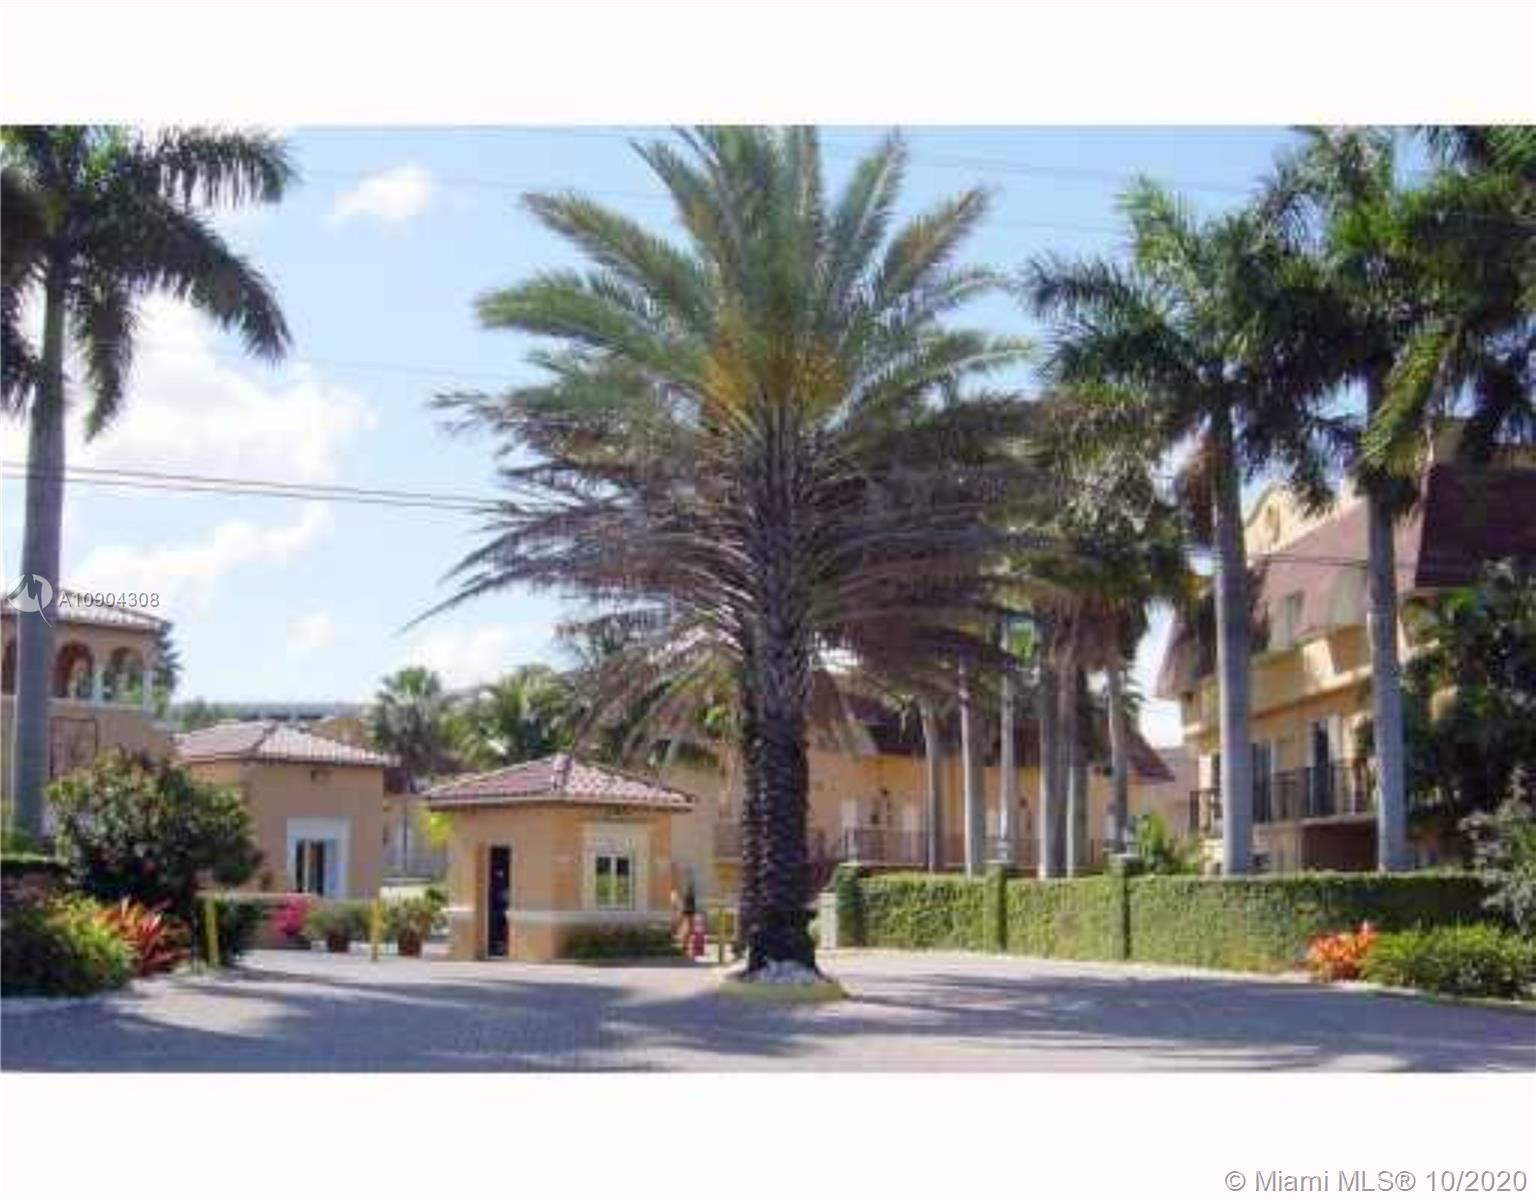 6707 N Kendall Dr #113 For Sale A10904308, FL